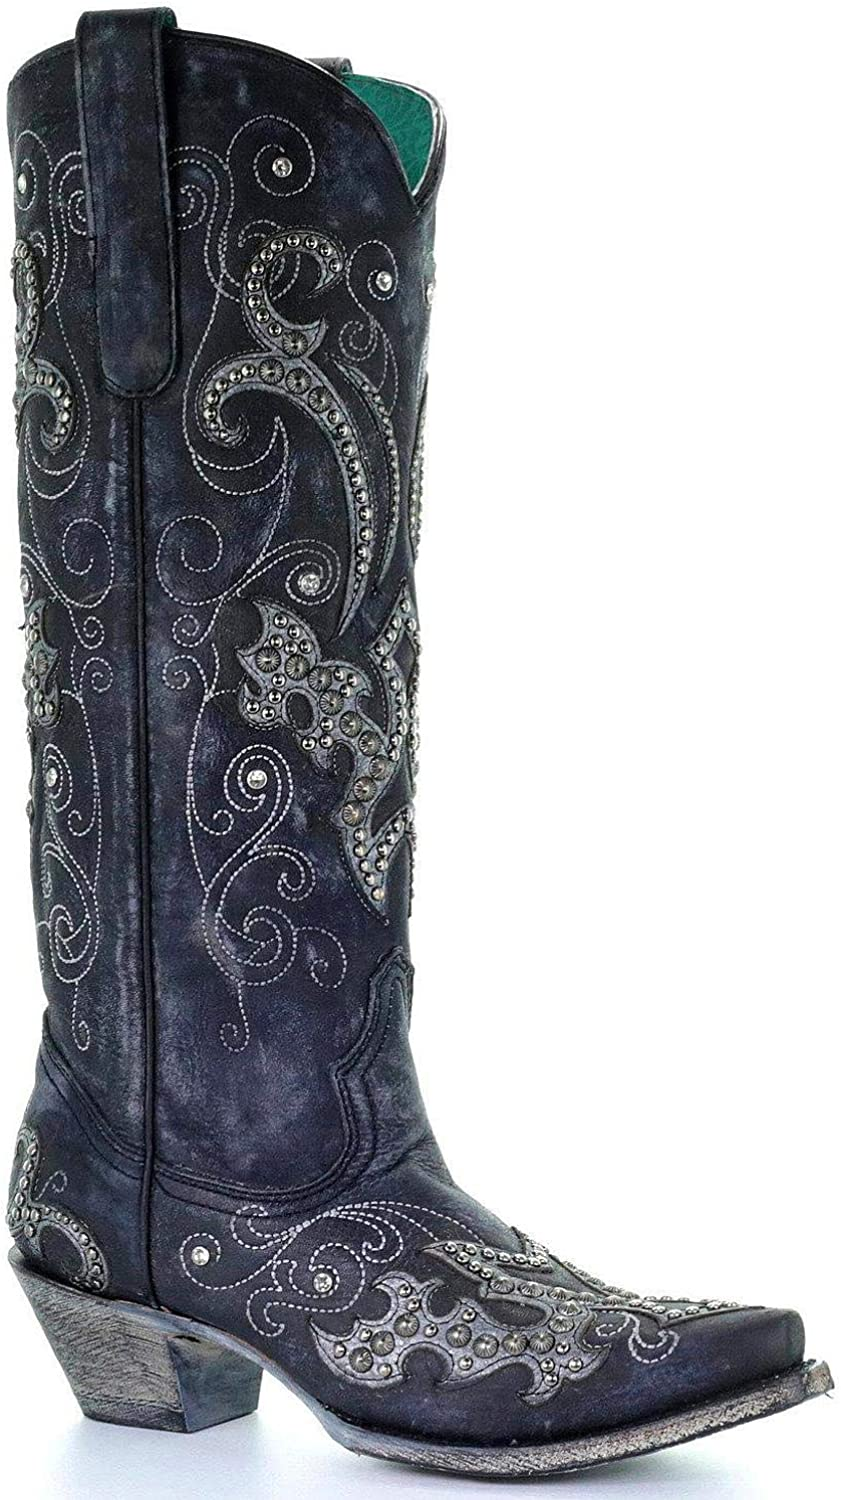 CORRAL Women's Tall Studded Overlay and Sn Cowgirl Boot Crystals Award Manufacturer regenerated product